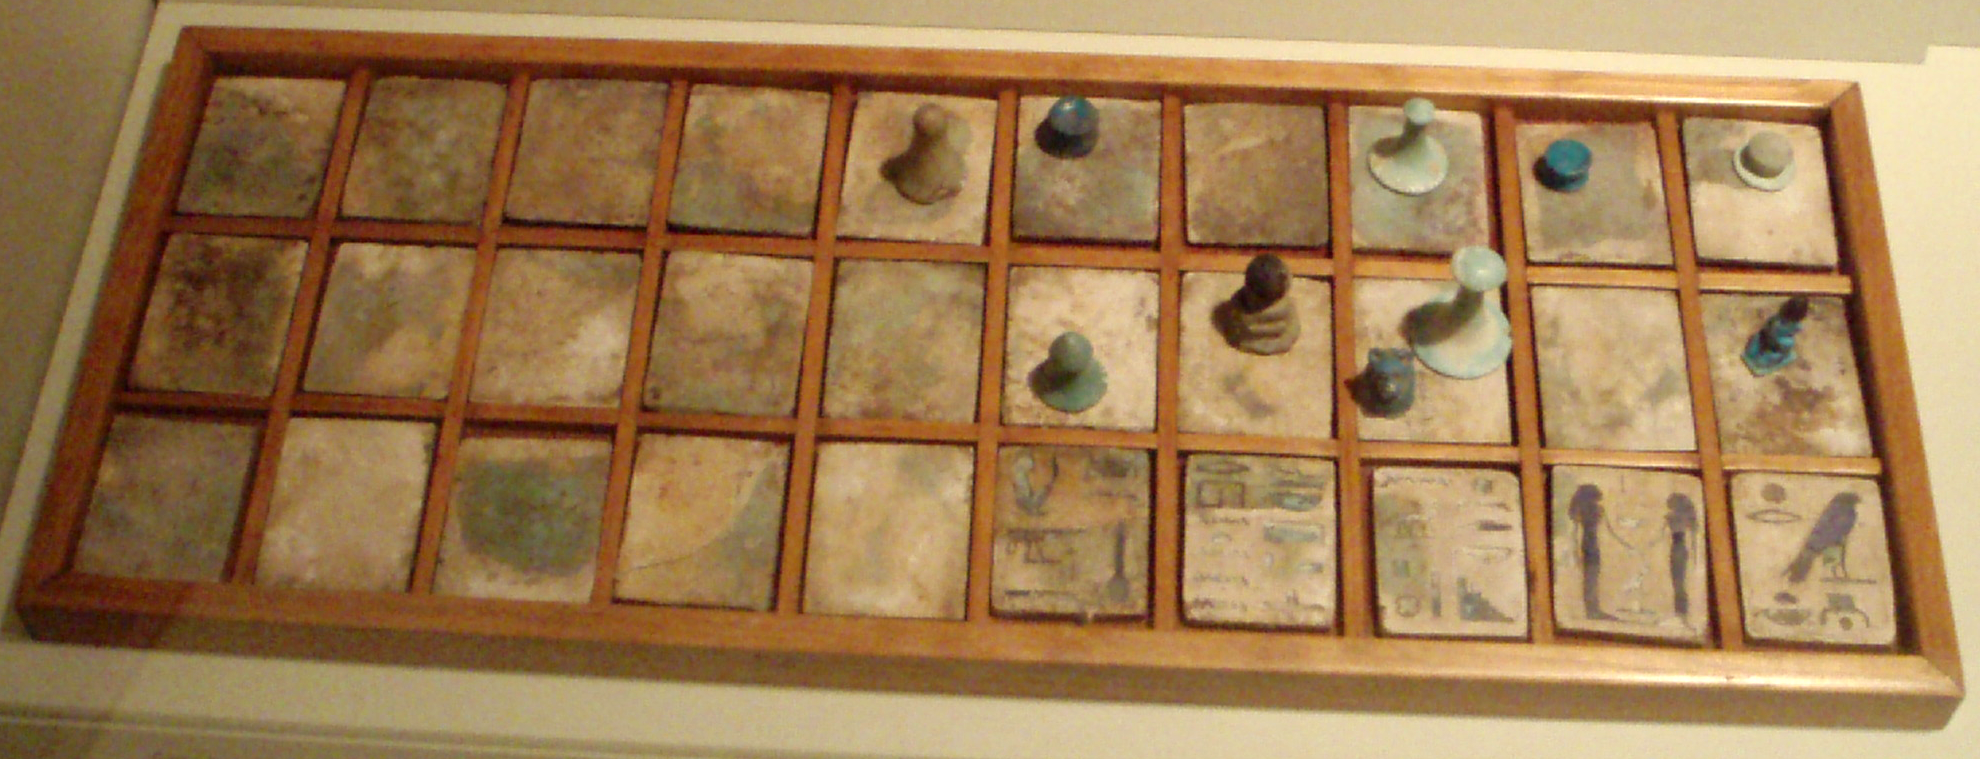 Senet board with religious markings in the ROM, photo by Keith Schengili-Roberts